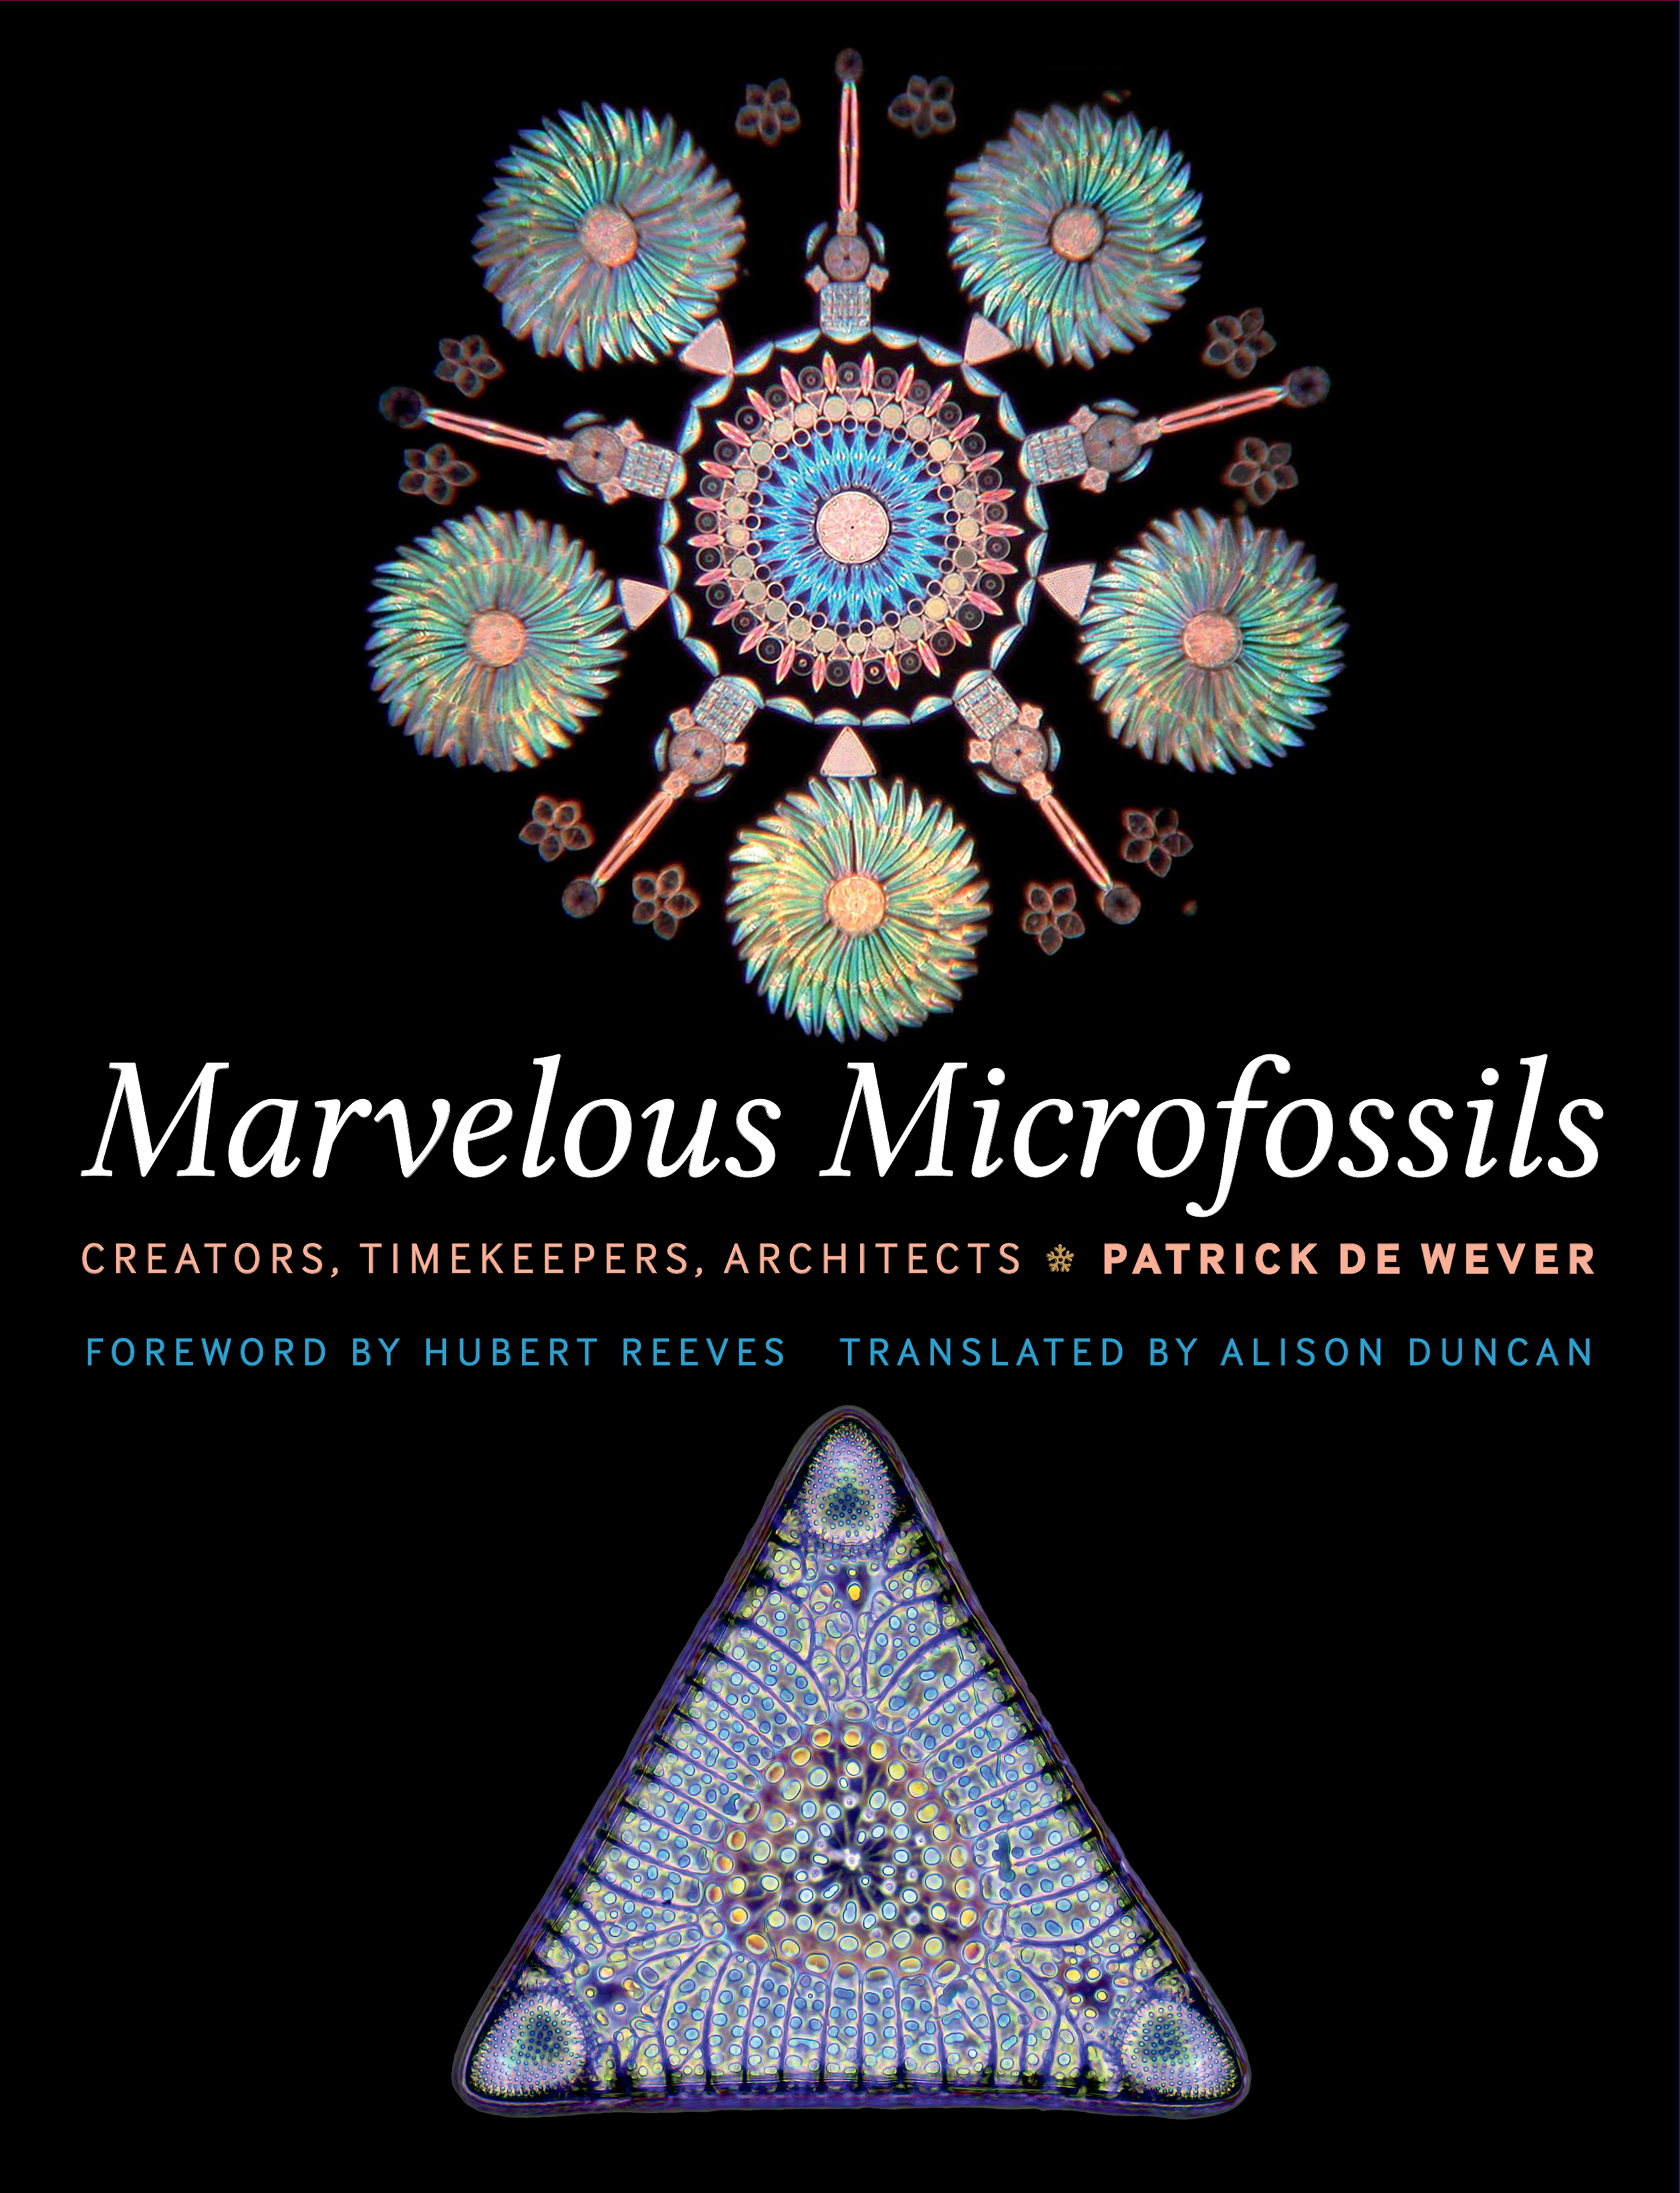 marvelous microfossils cover